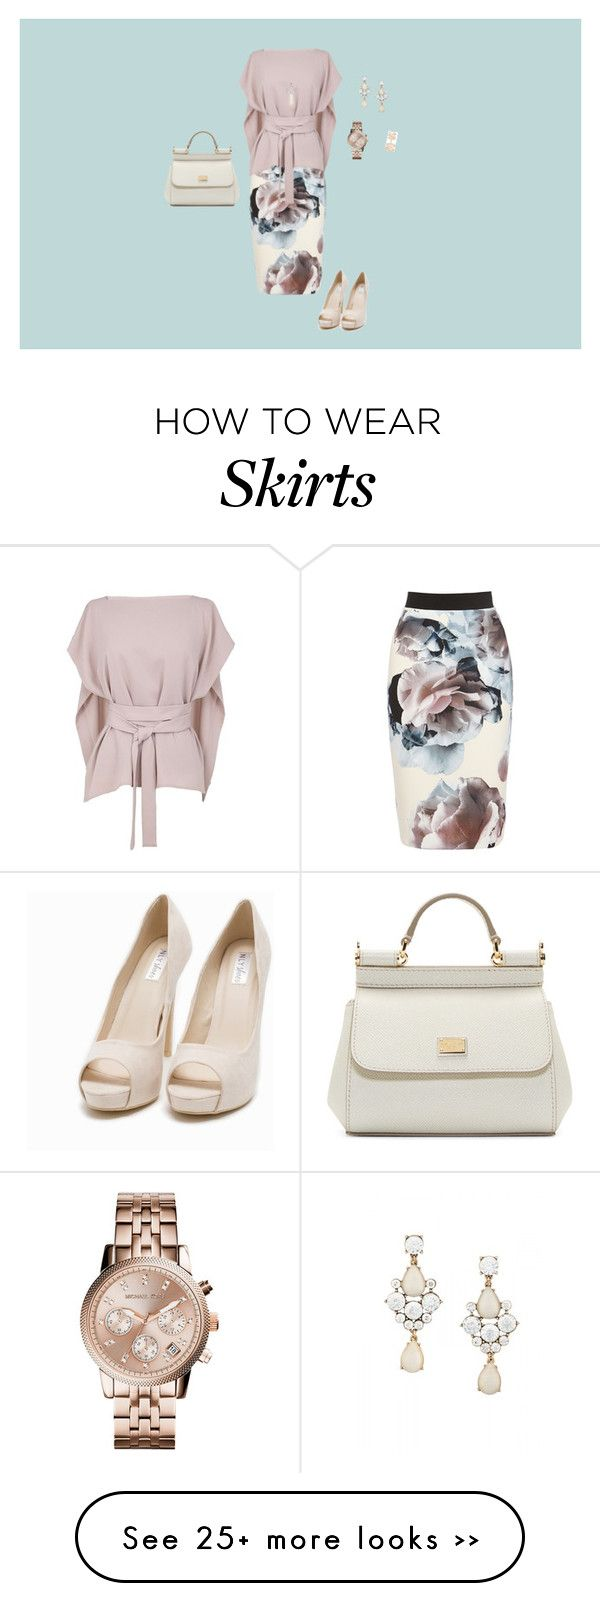 """How to wear a printed skirt"" by scarlett1272 on Polyvore featuring TIBI, Michael Kors, Repossi, kiz&Co., Dolce&Gabbana and Nly Shoes"